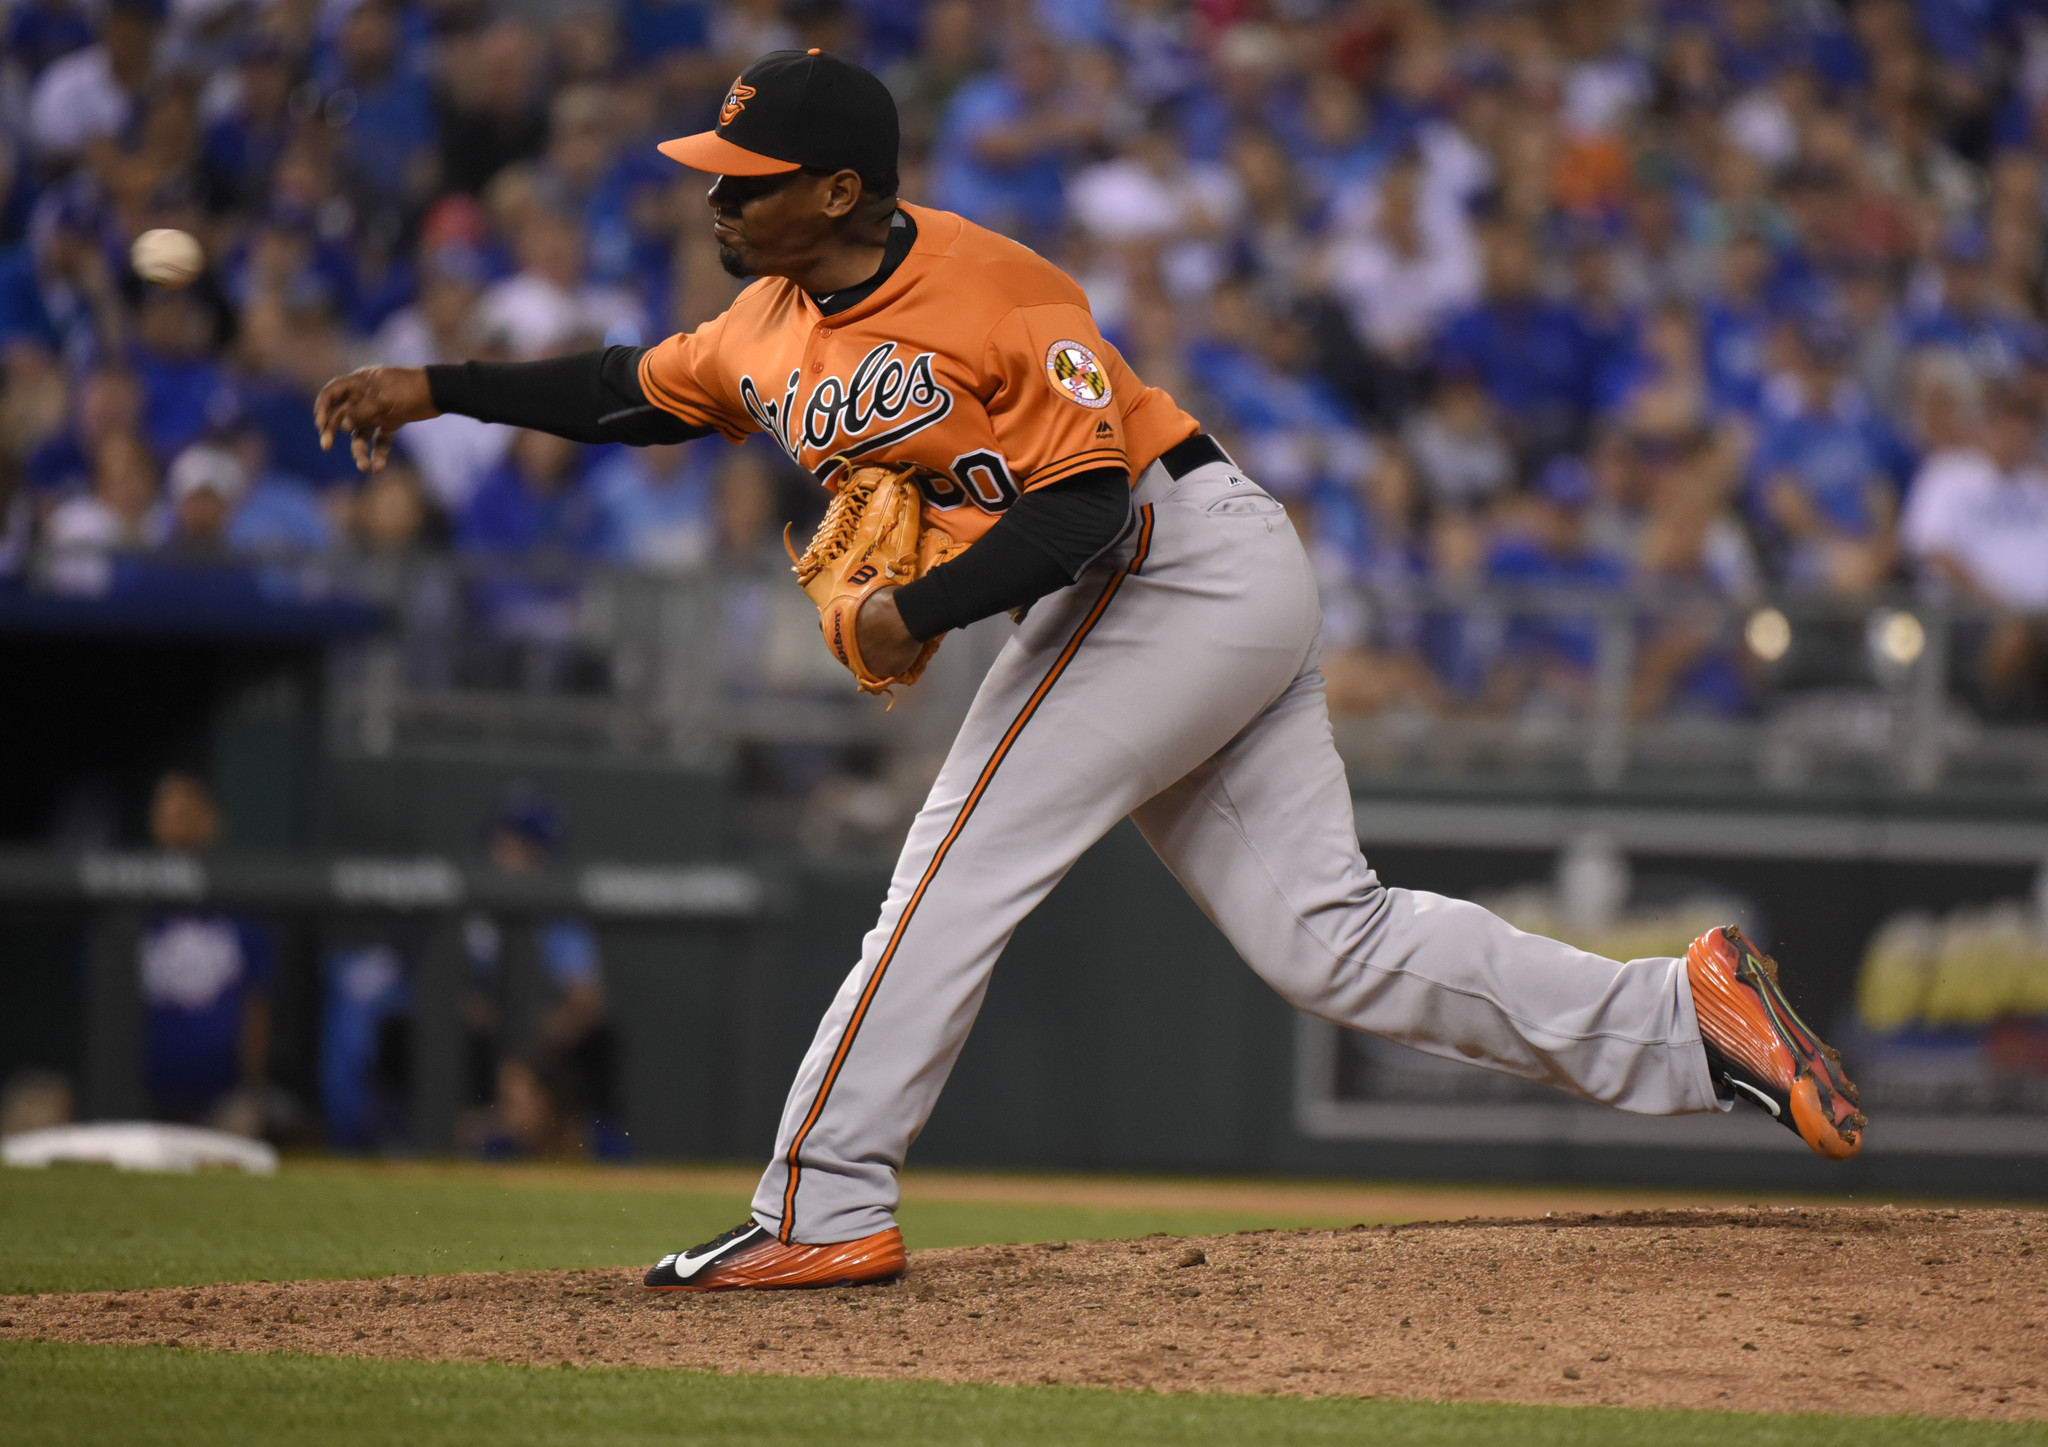 Bal-orioles-reliever-mychal-givens-comes-through-in-the-clutch-with-game-changing-escape-act-20160423